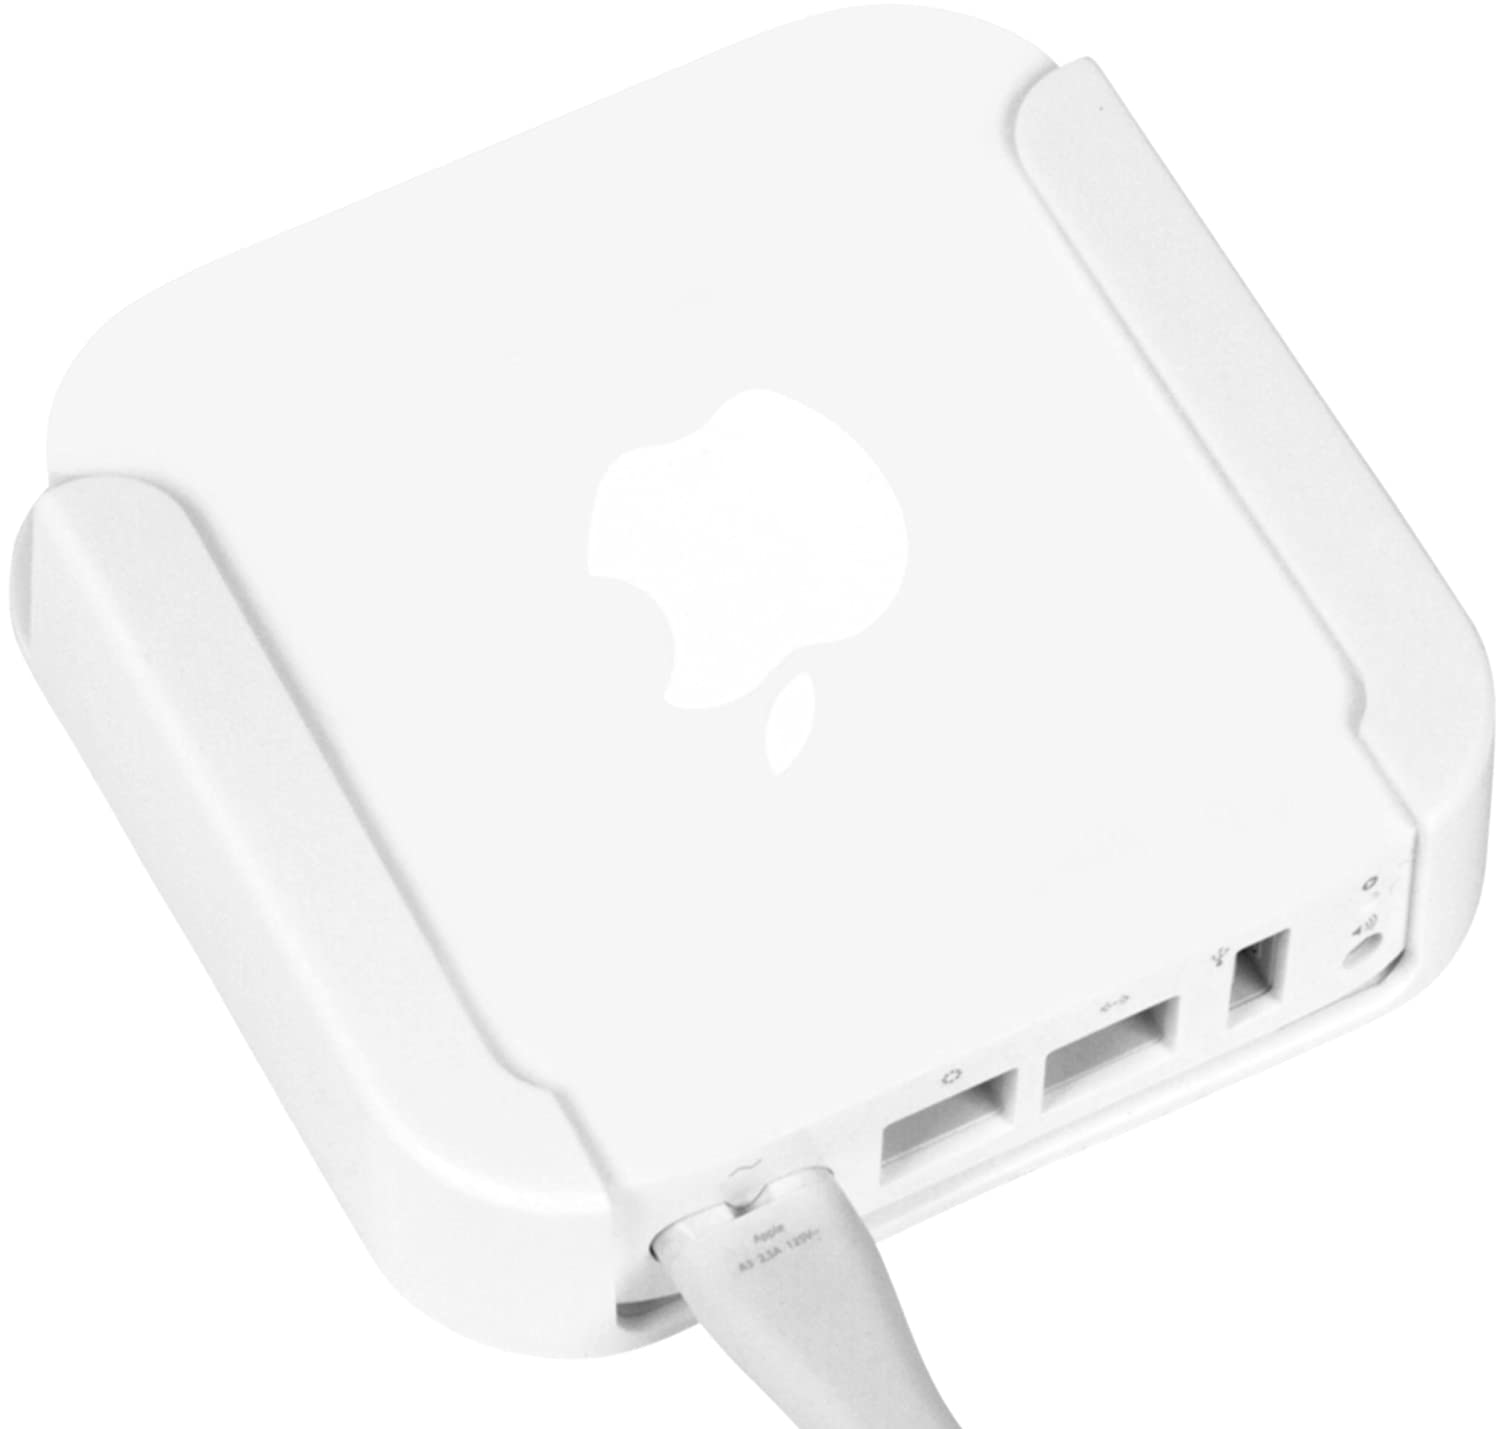 Innovelis TotalMount Airport Express Mounting Kit, White